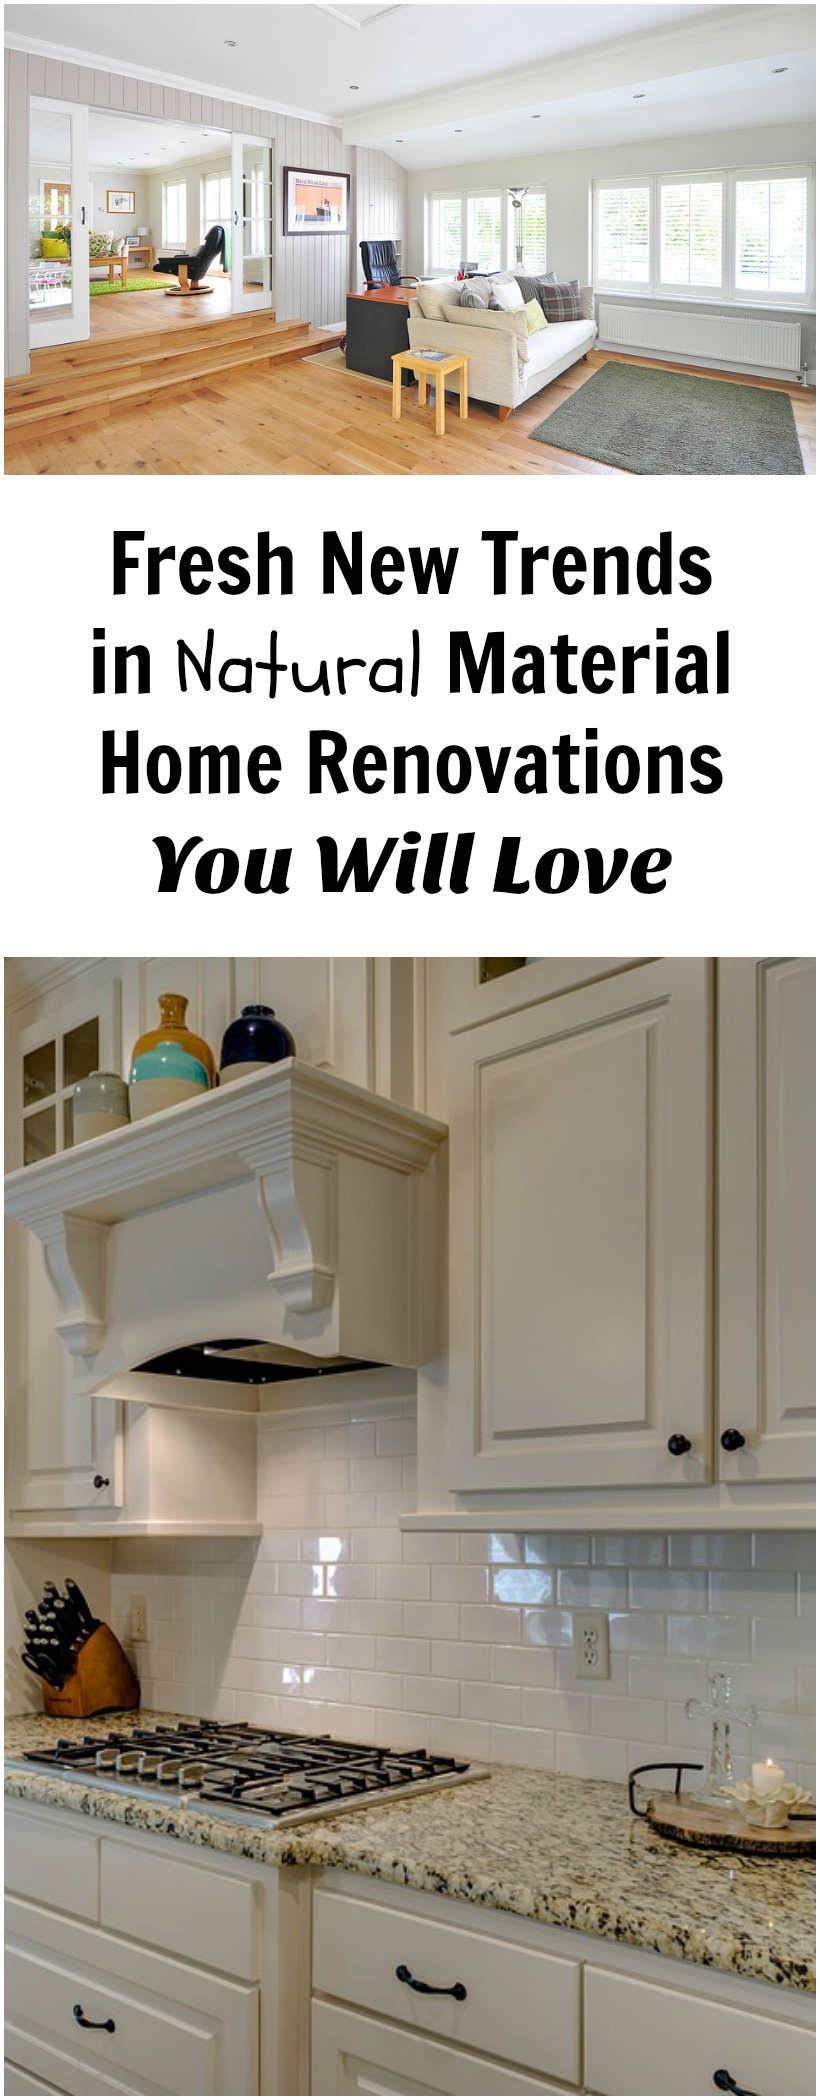 Fresh New Trends in Natural Material Home Renovations You Will Love on chemistrycachet.com